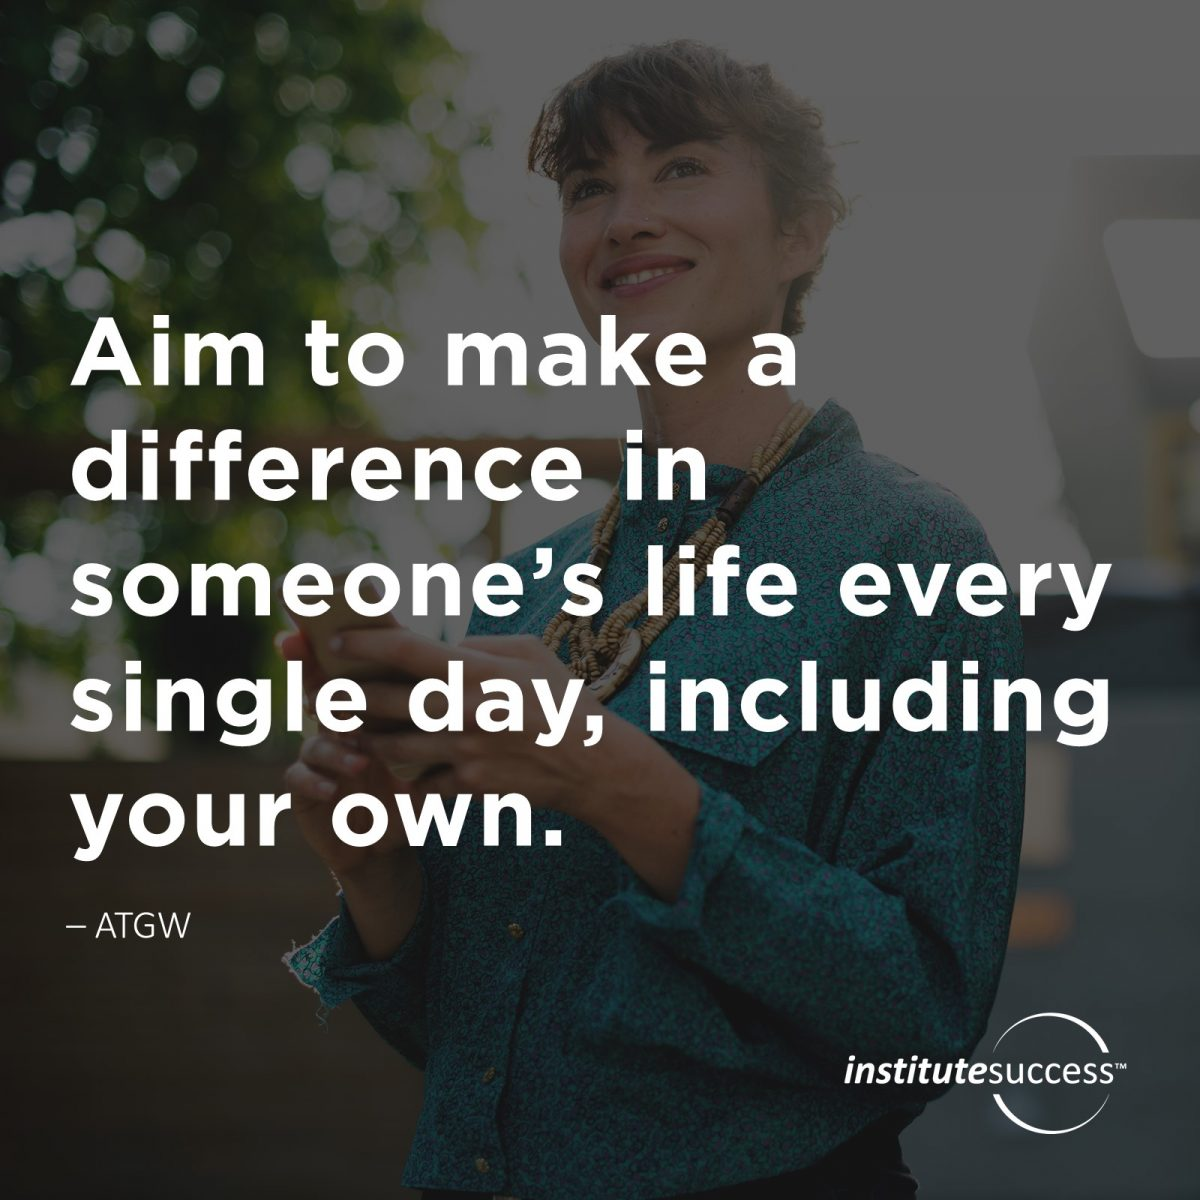 Aim to make a difference in someone's life every single day, including your own. Dow Zantamata